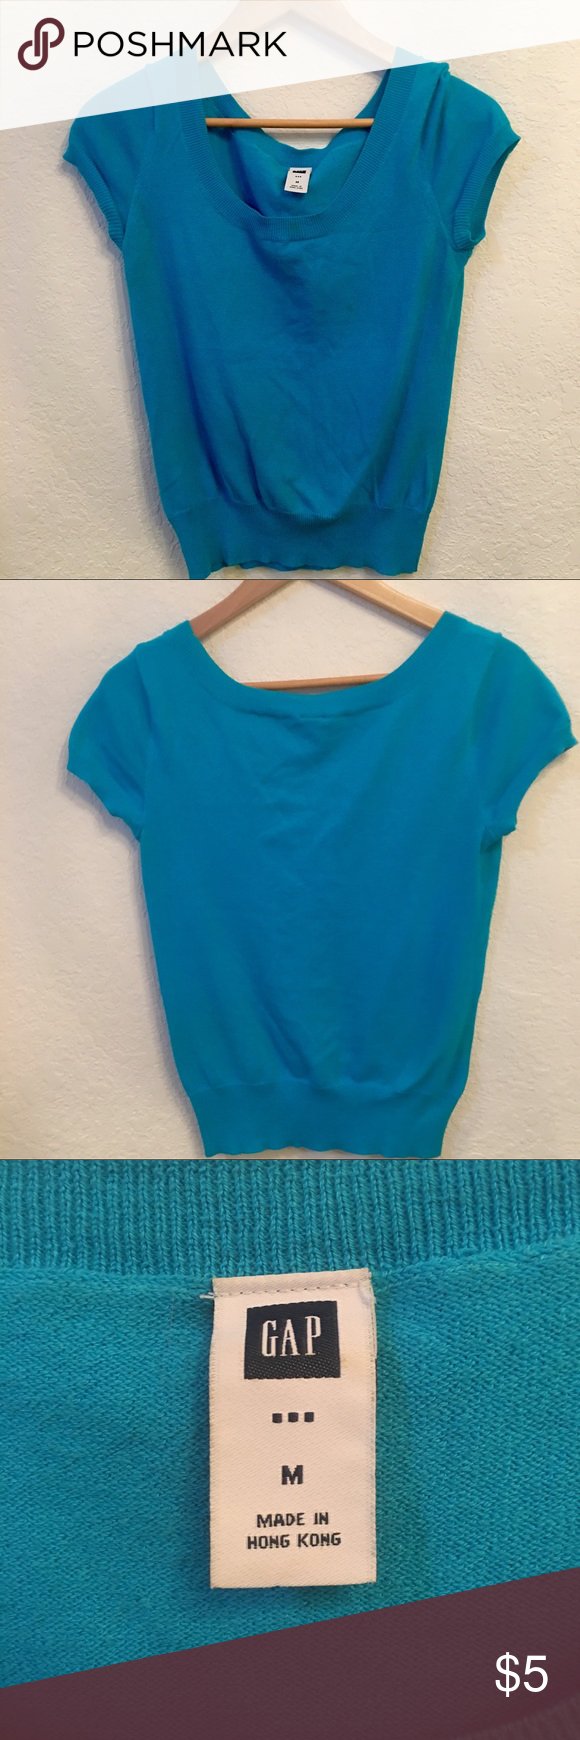 GAP Bright Blue Short Sleeve Sweater Sz M 76d257365